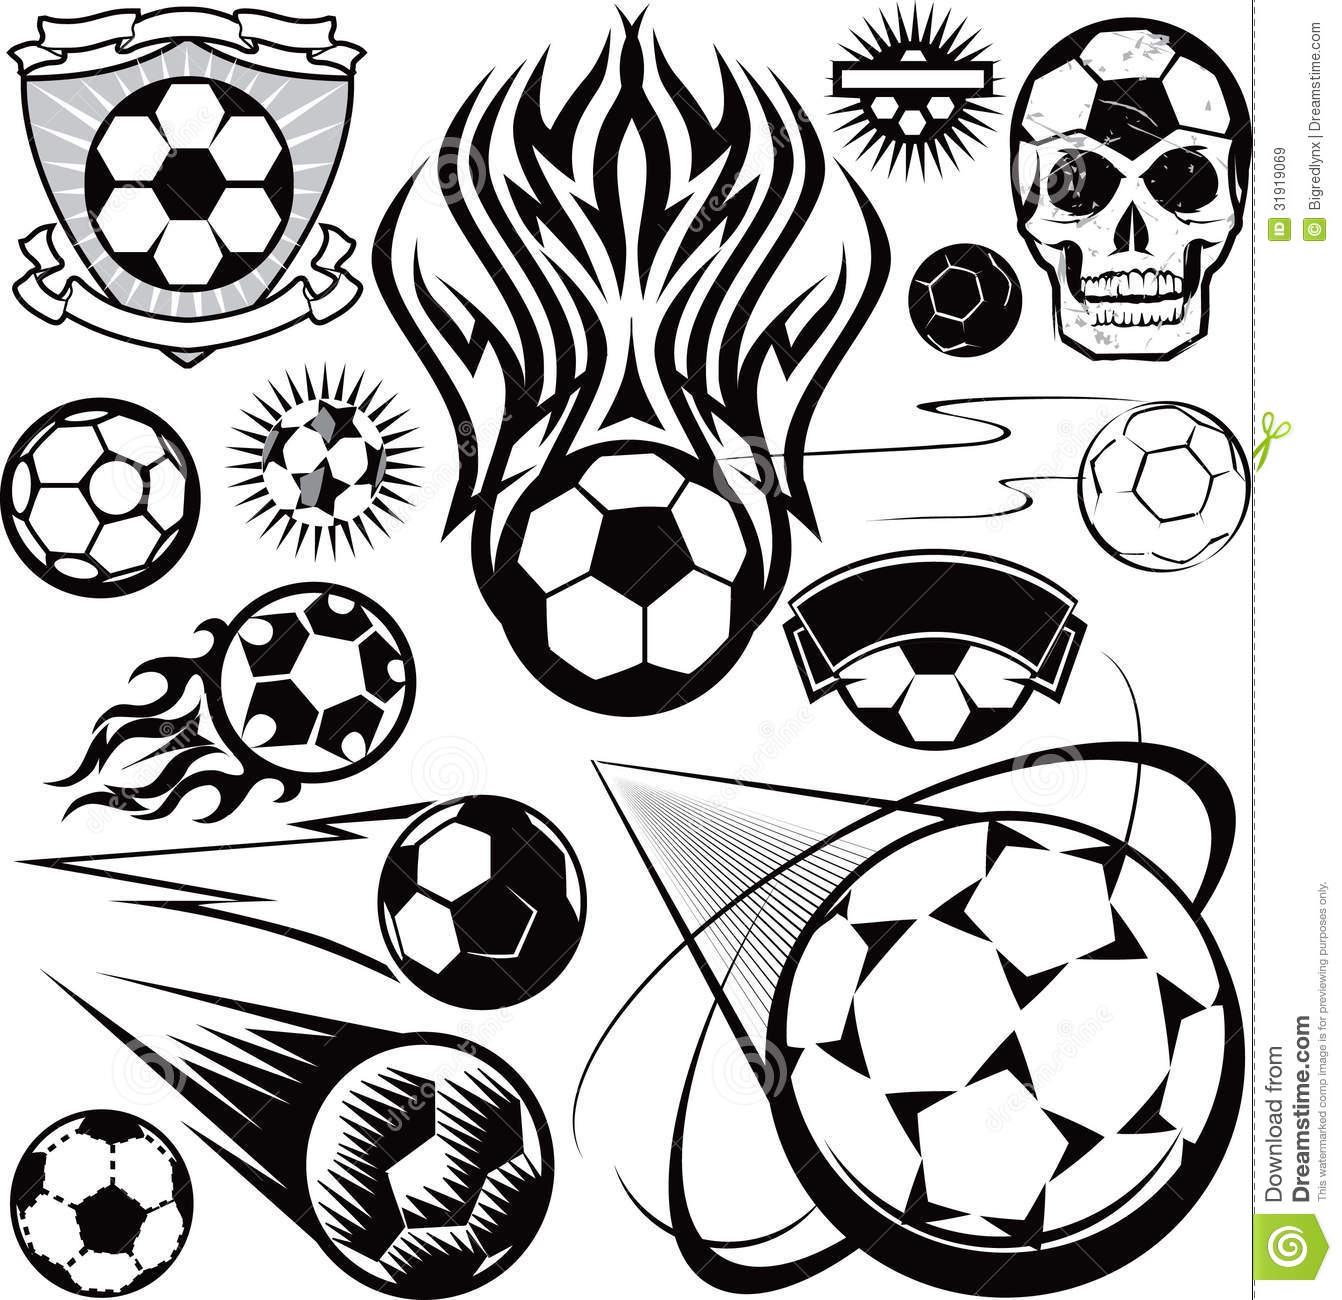 Football Related Clipart